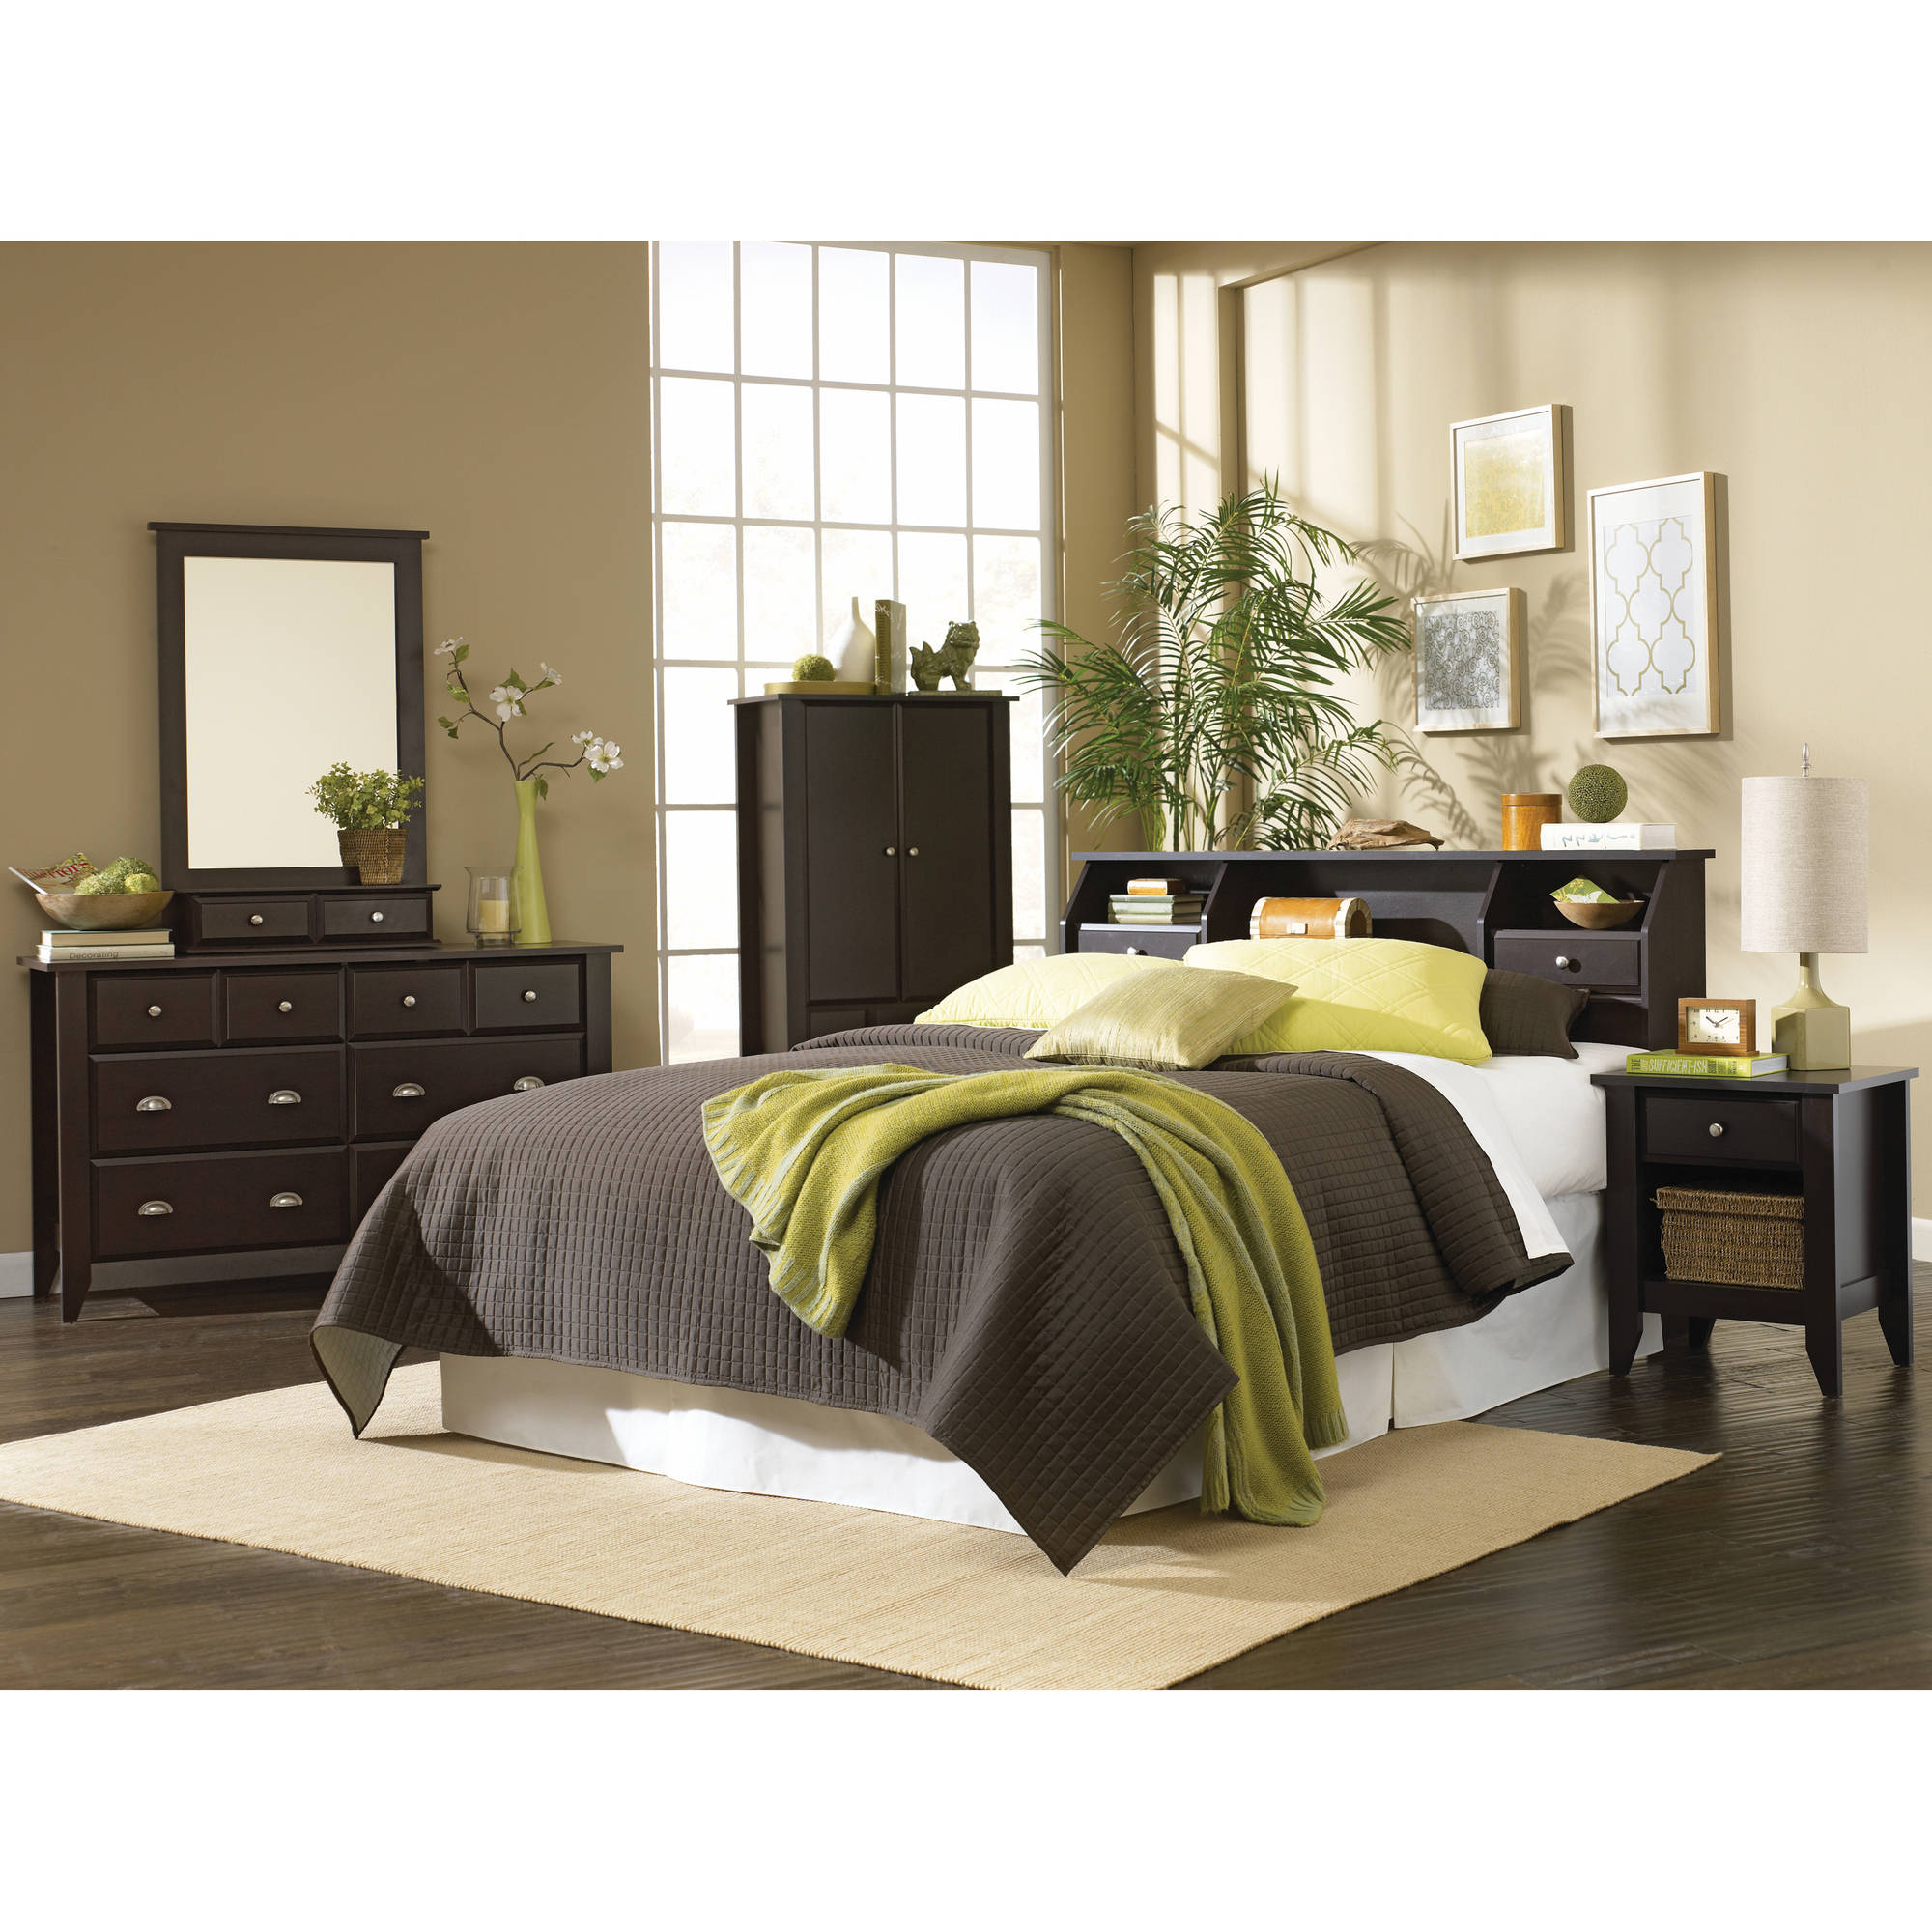 Sauder Shoal Creek Bedroom Furniture Collection